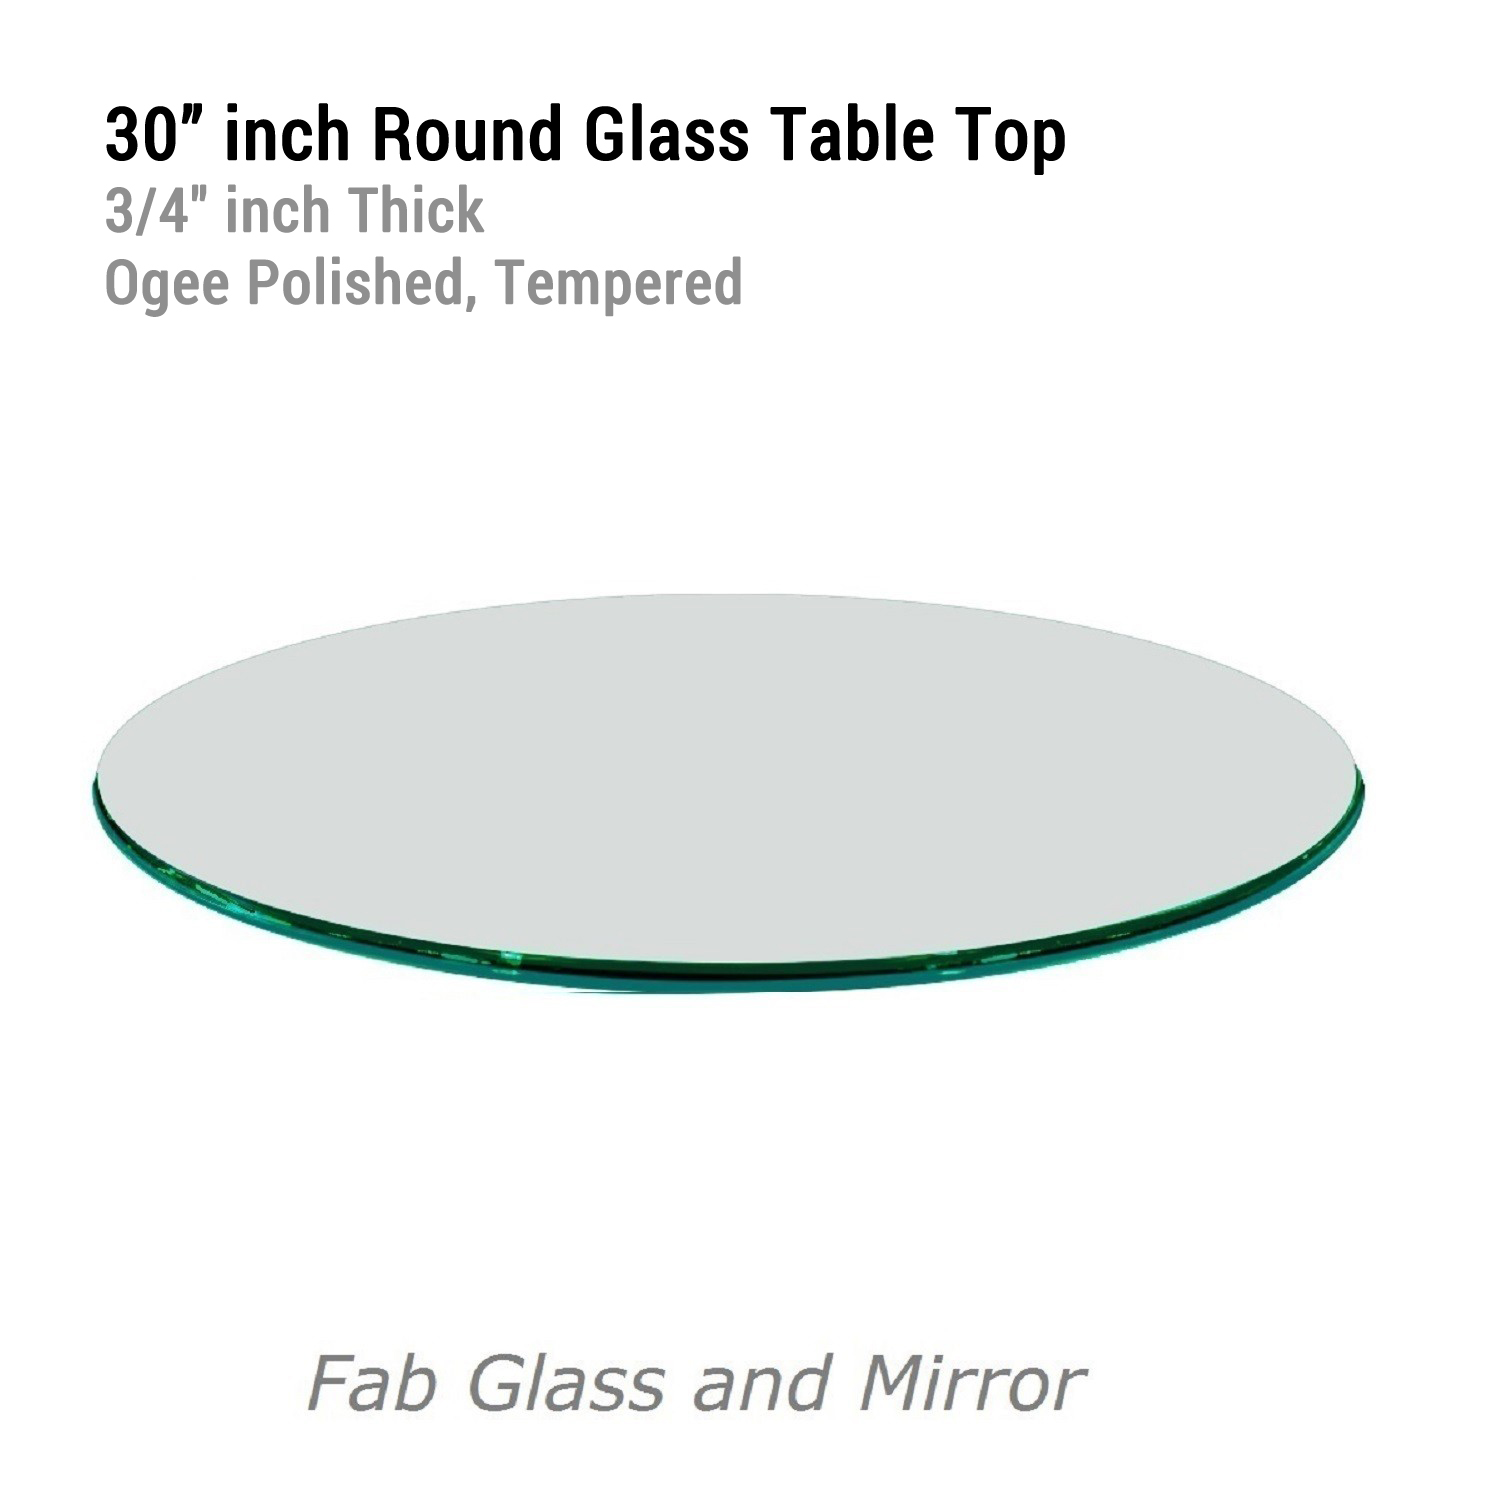 Fab glass and mirror 12 to 72 inch round clear glass Round glass table top